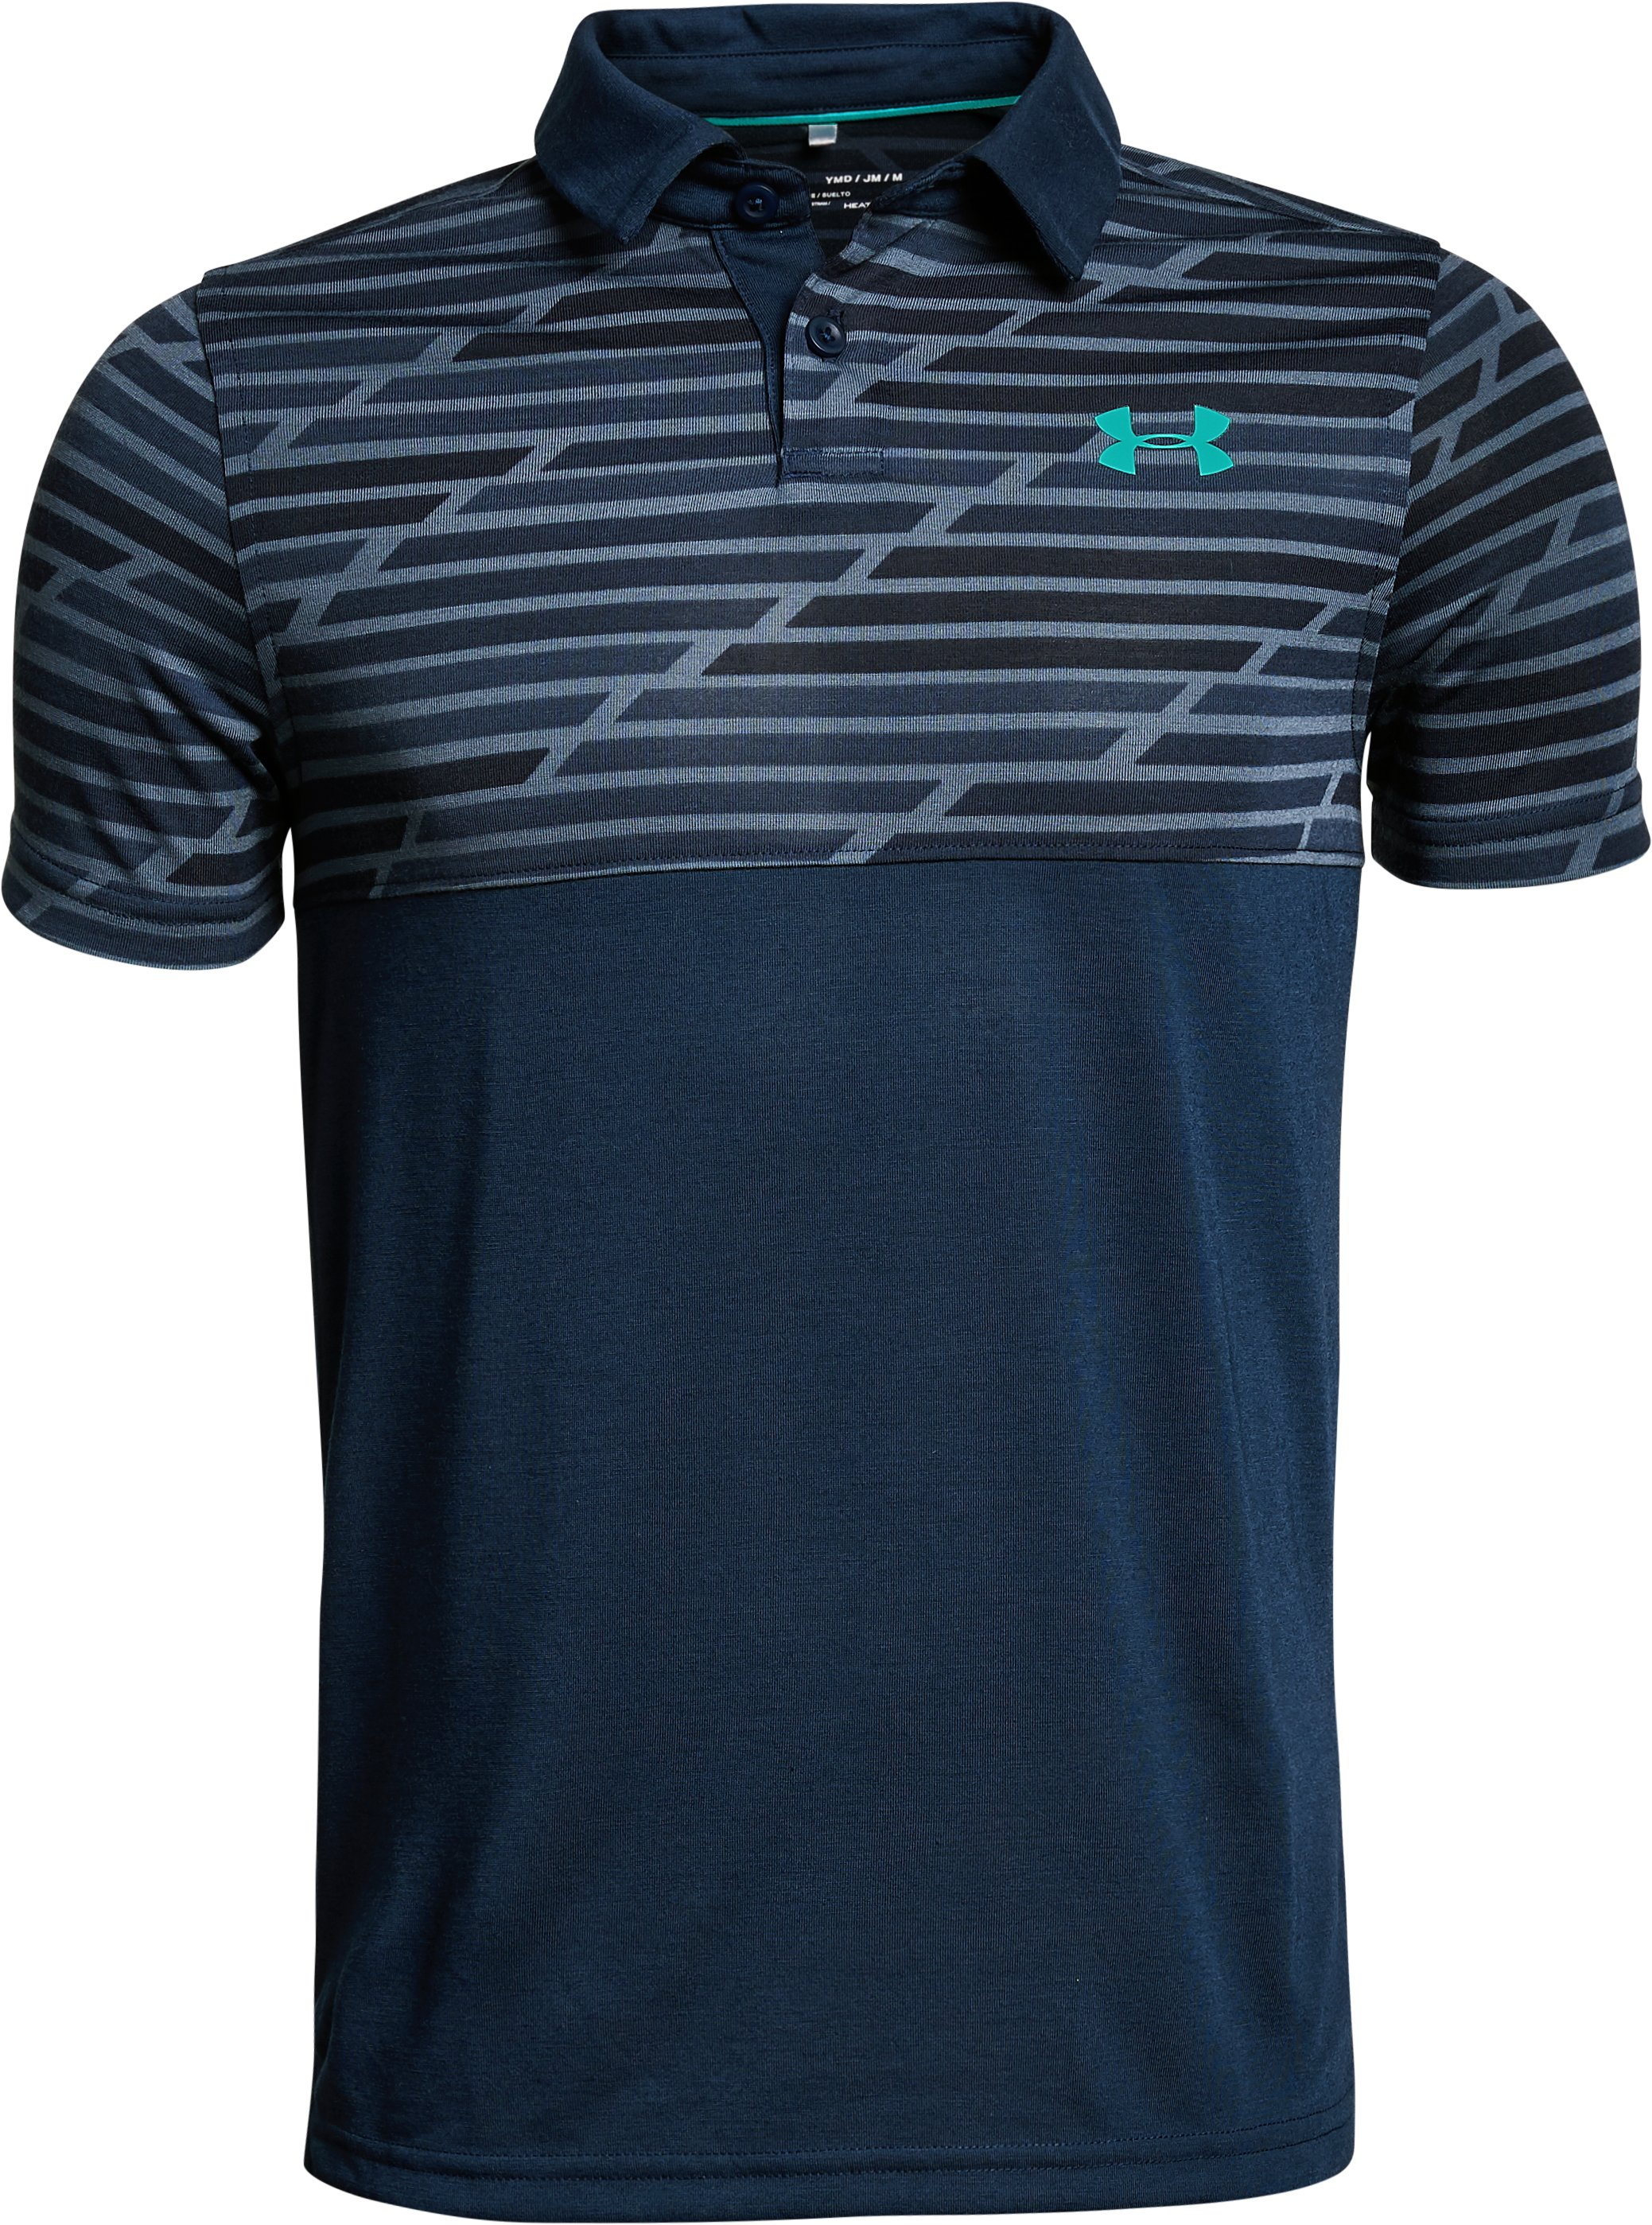 Boys' UA Threadborne Blocked Polo, Academy, undefined